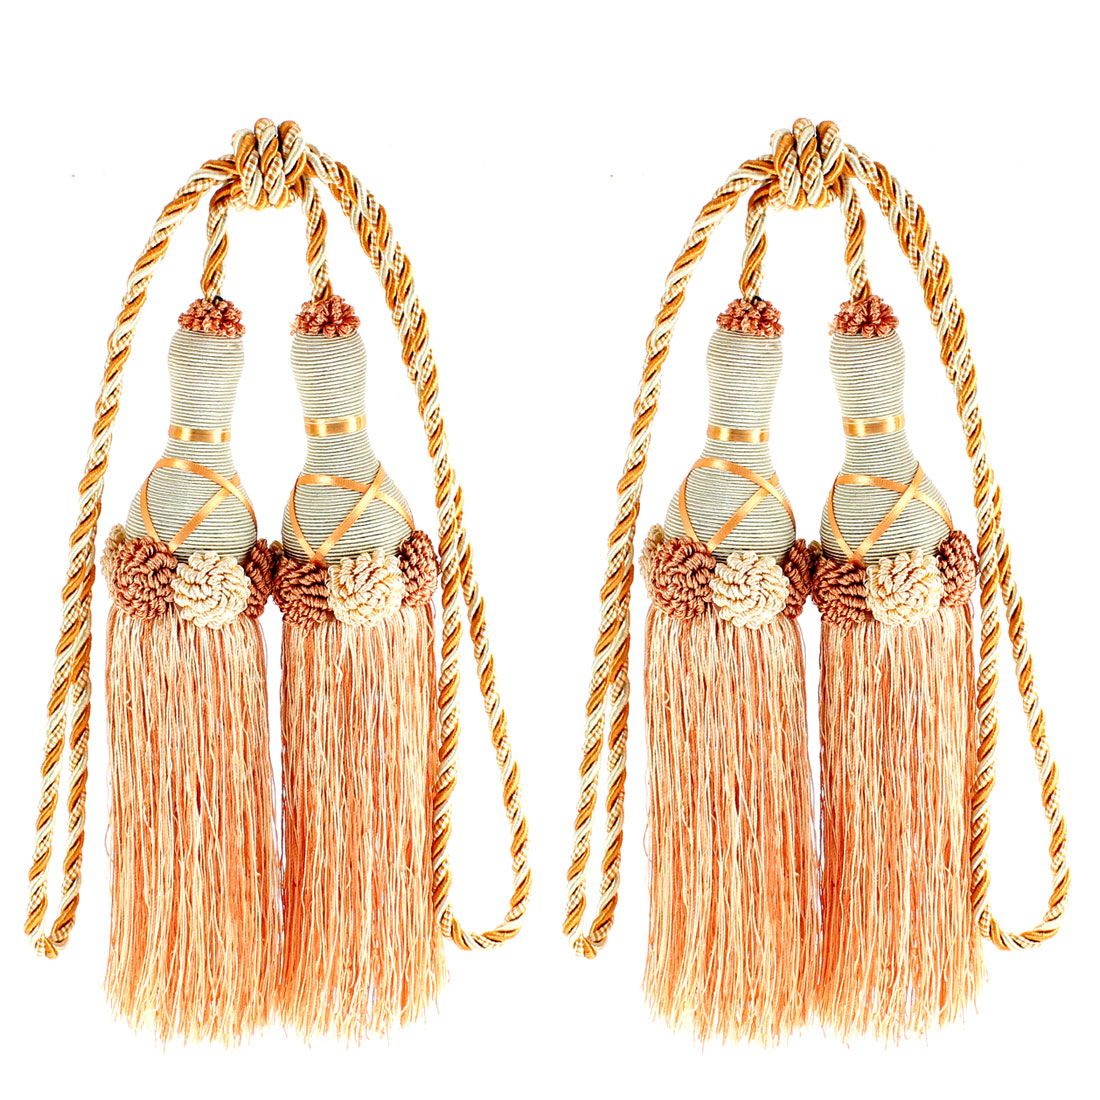 Home Curtain Dual Head Tassel Tiebacks Cord 2Pcs